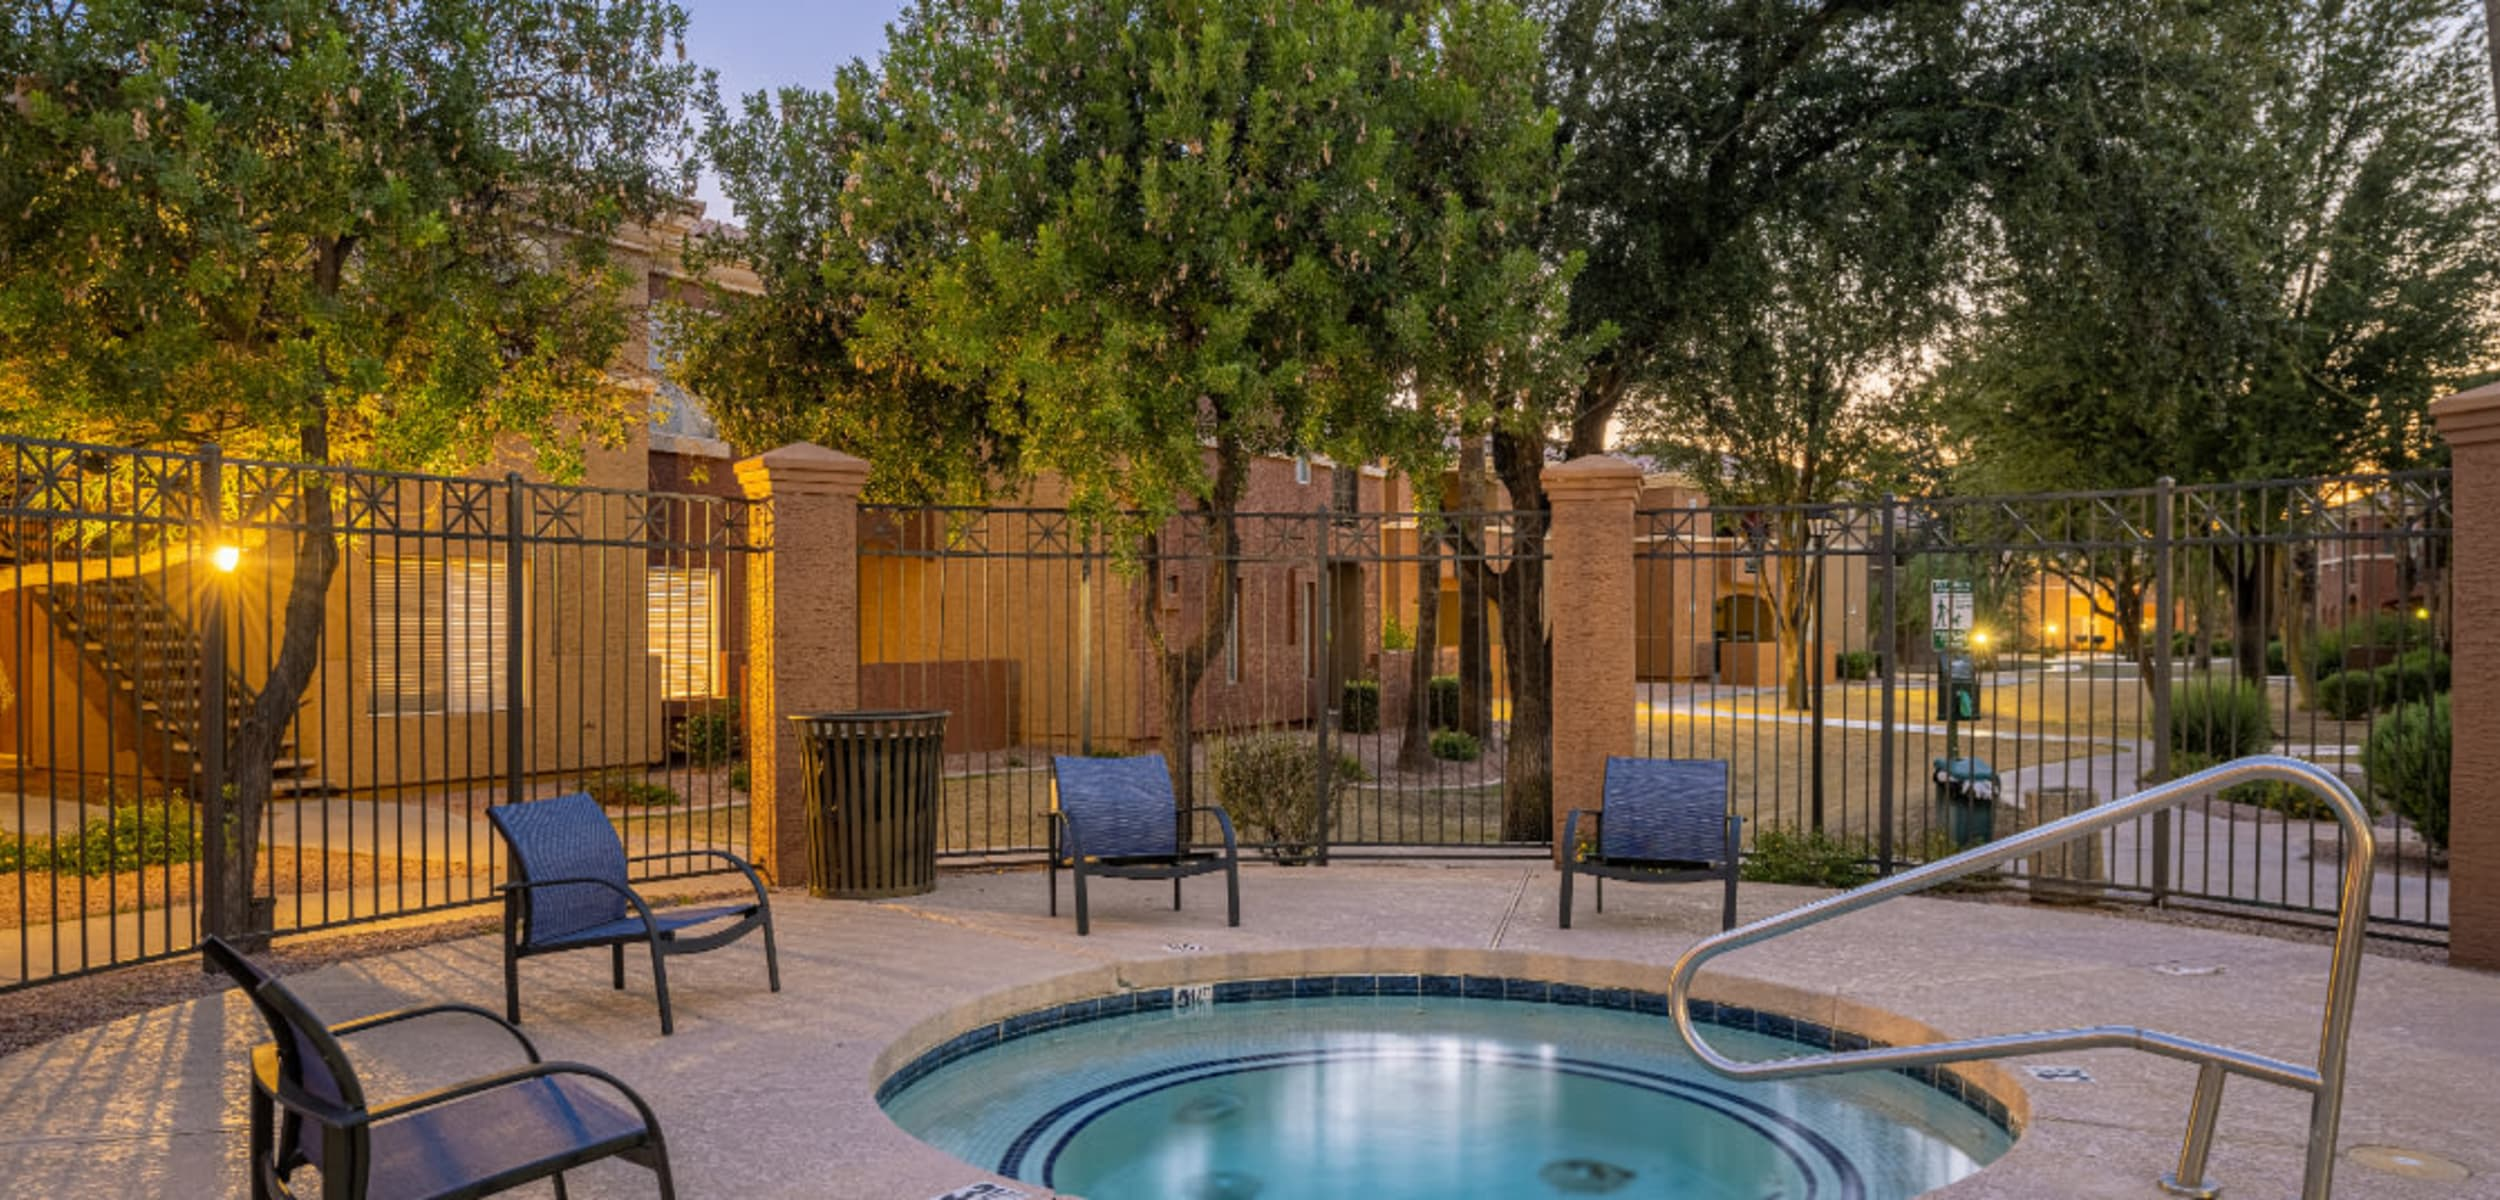 Enclosed hot tub area with cushioned chairs at Alante at the Islands in Chandler, Arizona